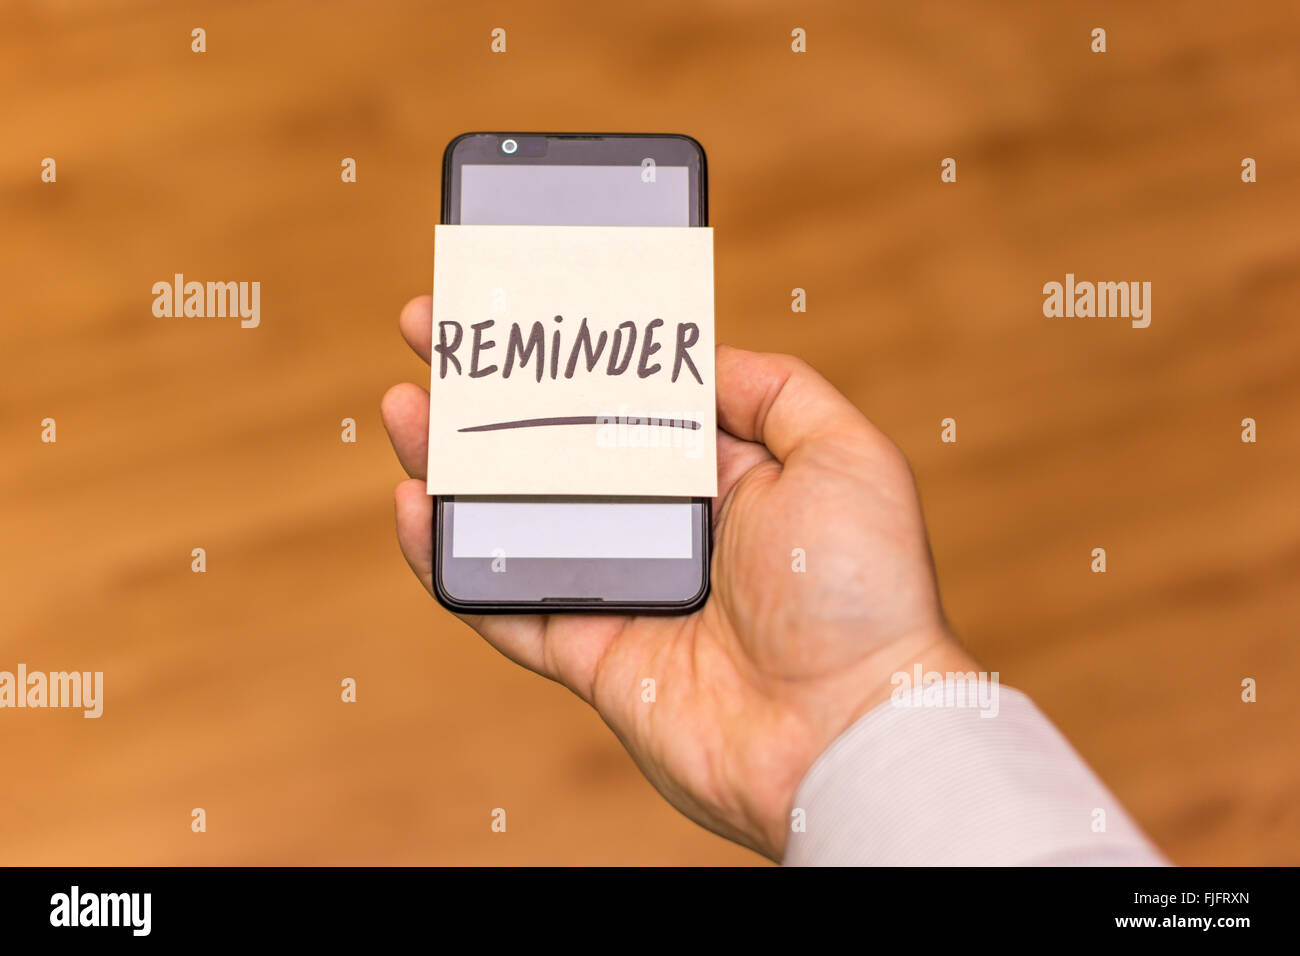 Human hand holding a smartphone with yellow note sticked on it. The word reminder is written on the note. Stock Photo